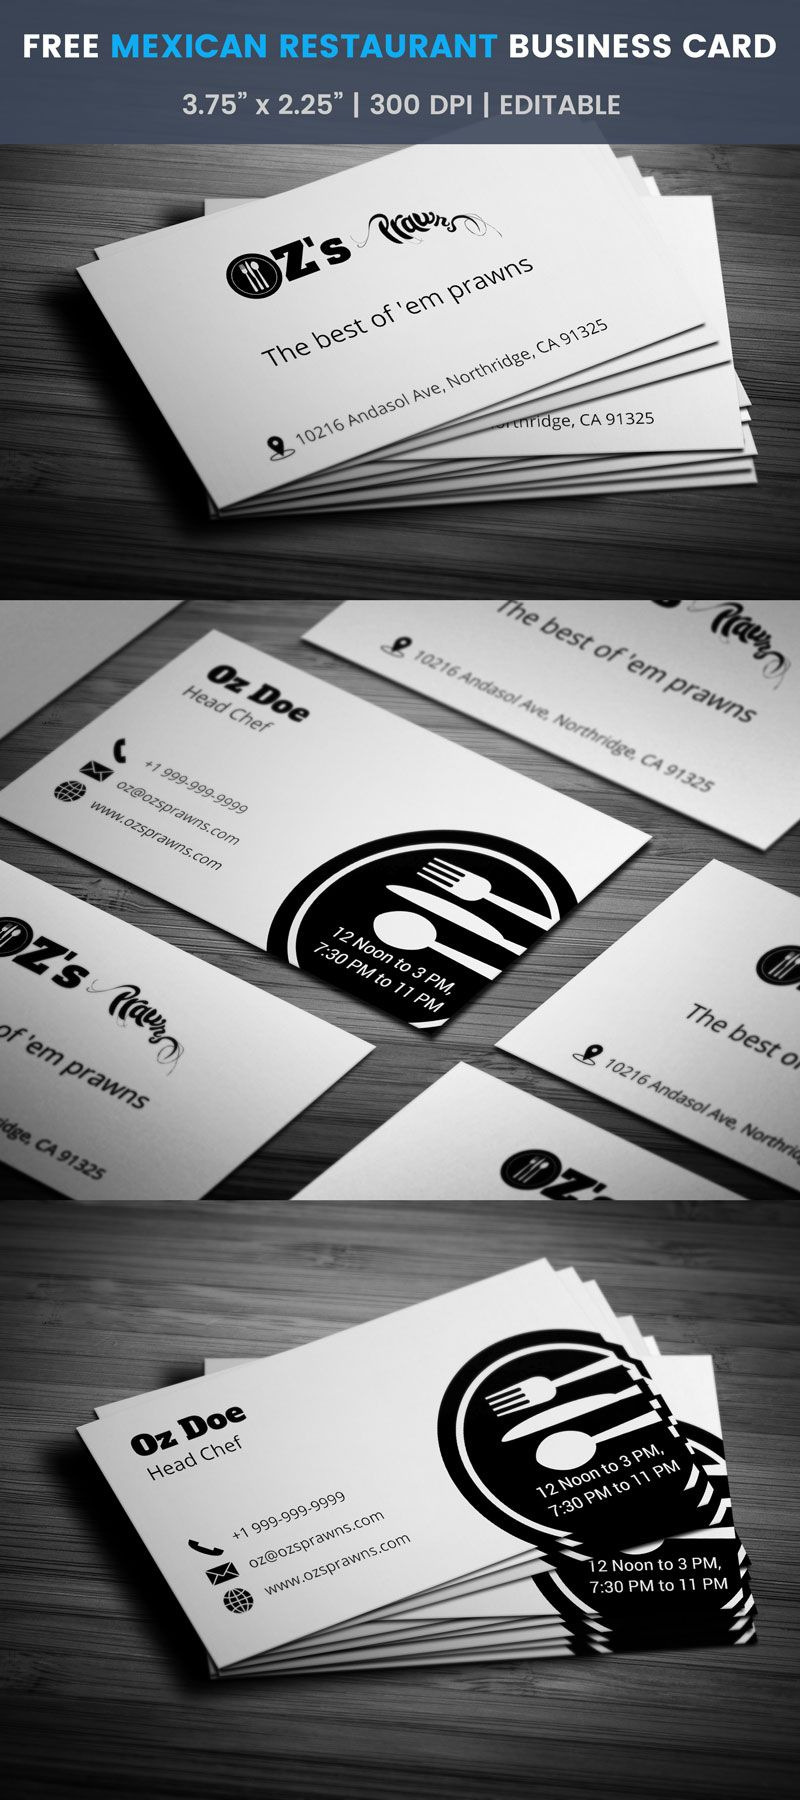 Mexican restaurant business card full preview free business card mexican restaurant business card full preview accmission Gallery